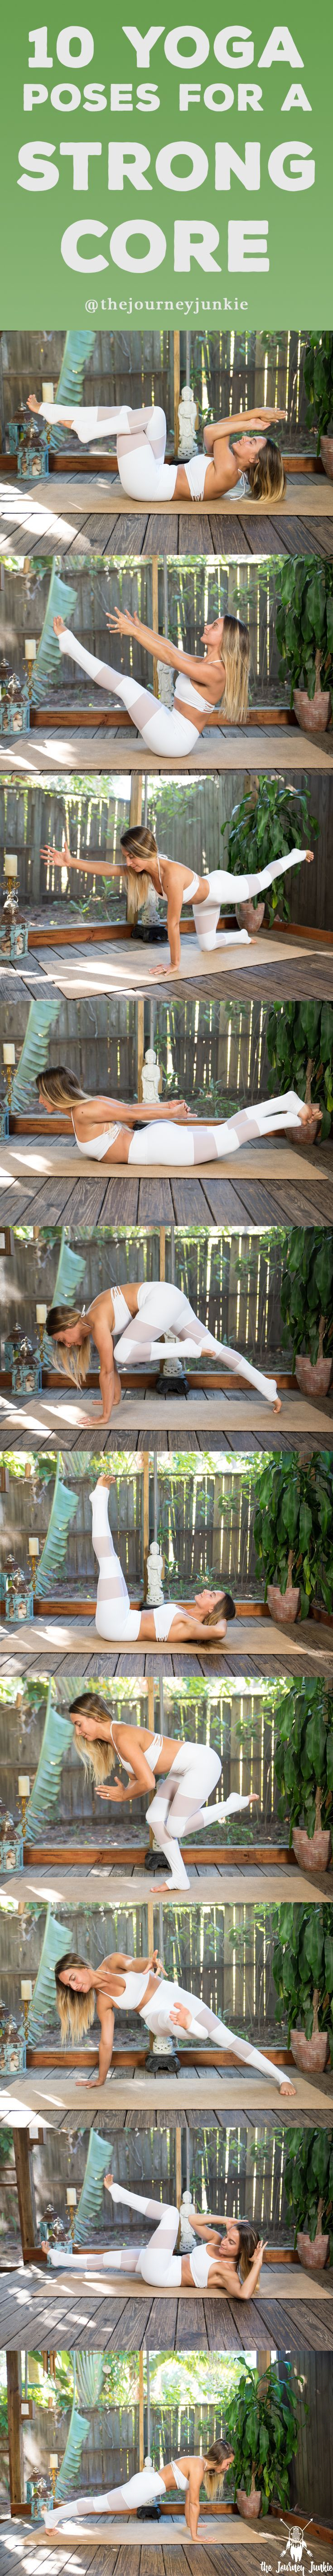 10 Poses for a Strong & Powerful Core + a Free Strong Sequence Yoga Downloaded -...